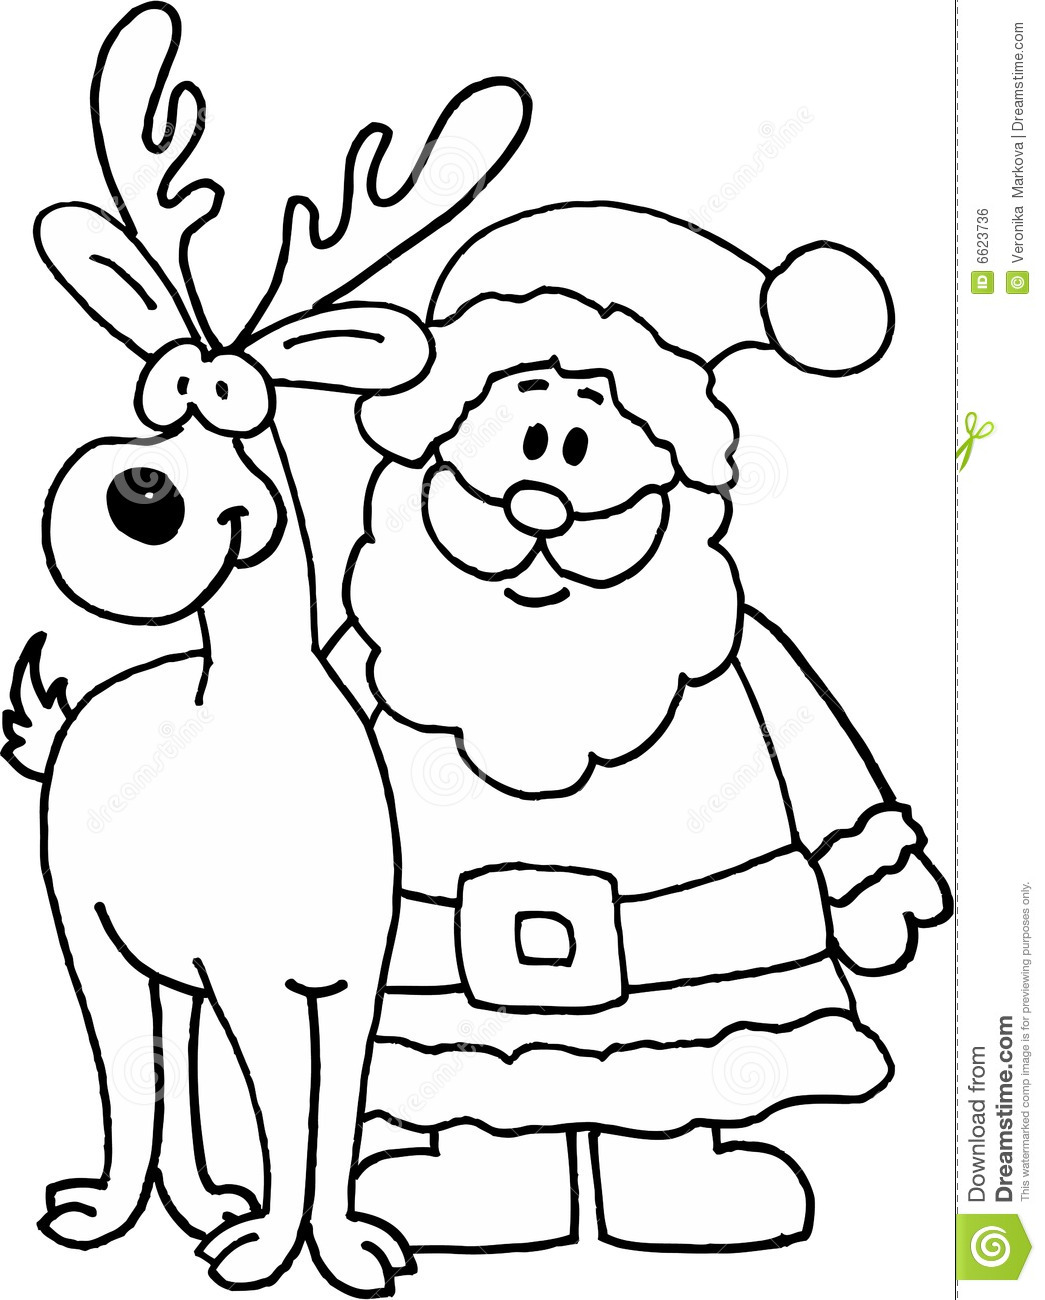 1045x1300 Santa Claus And Reindeer Drawings Images Amp Pictures